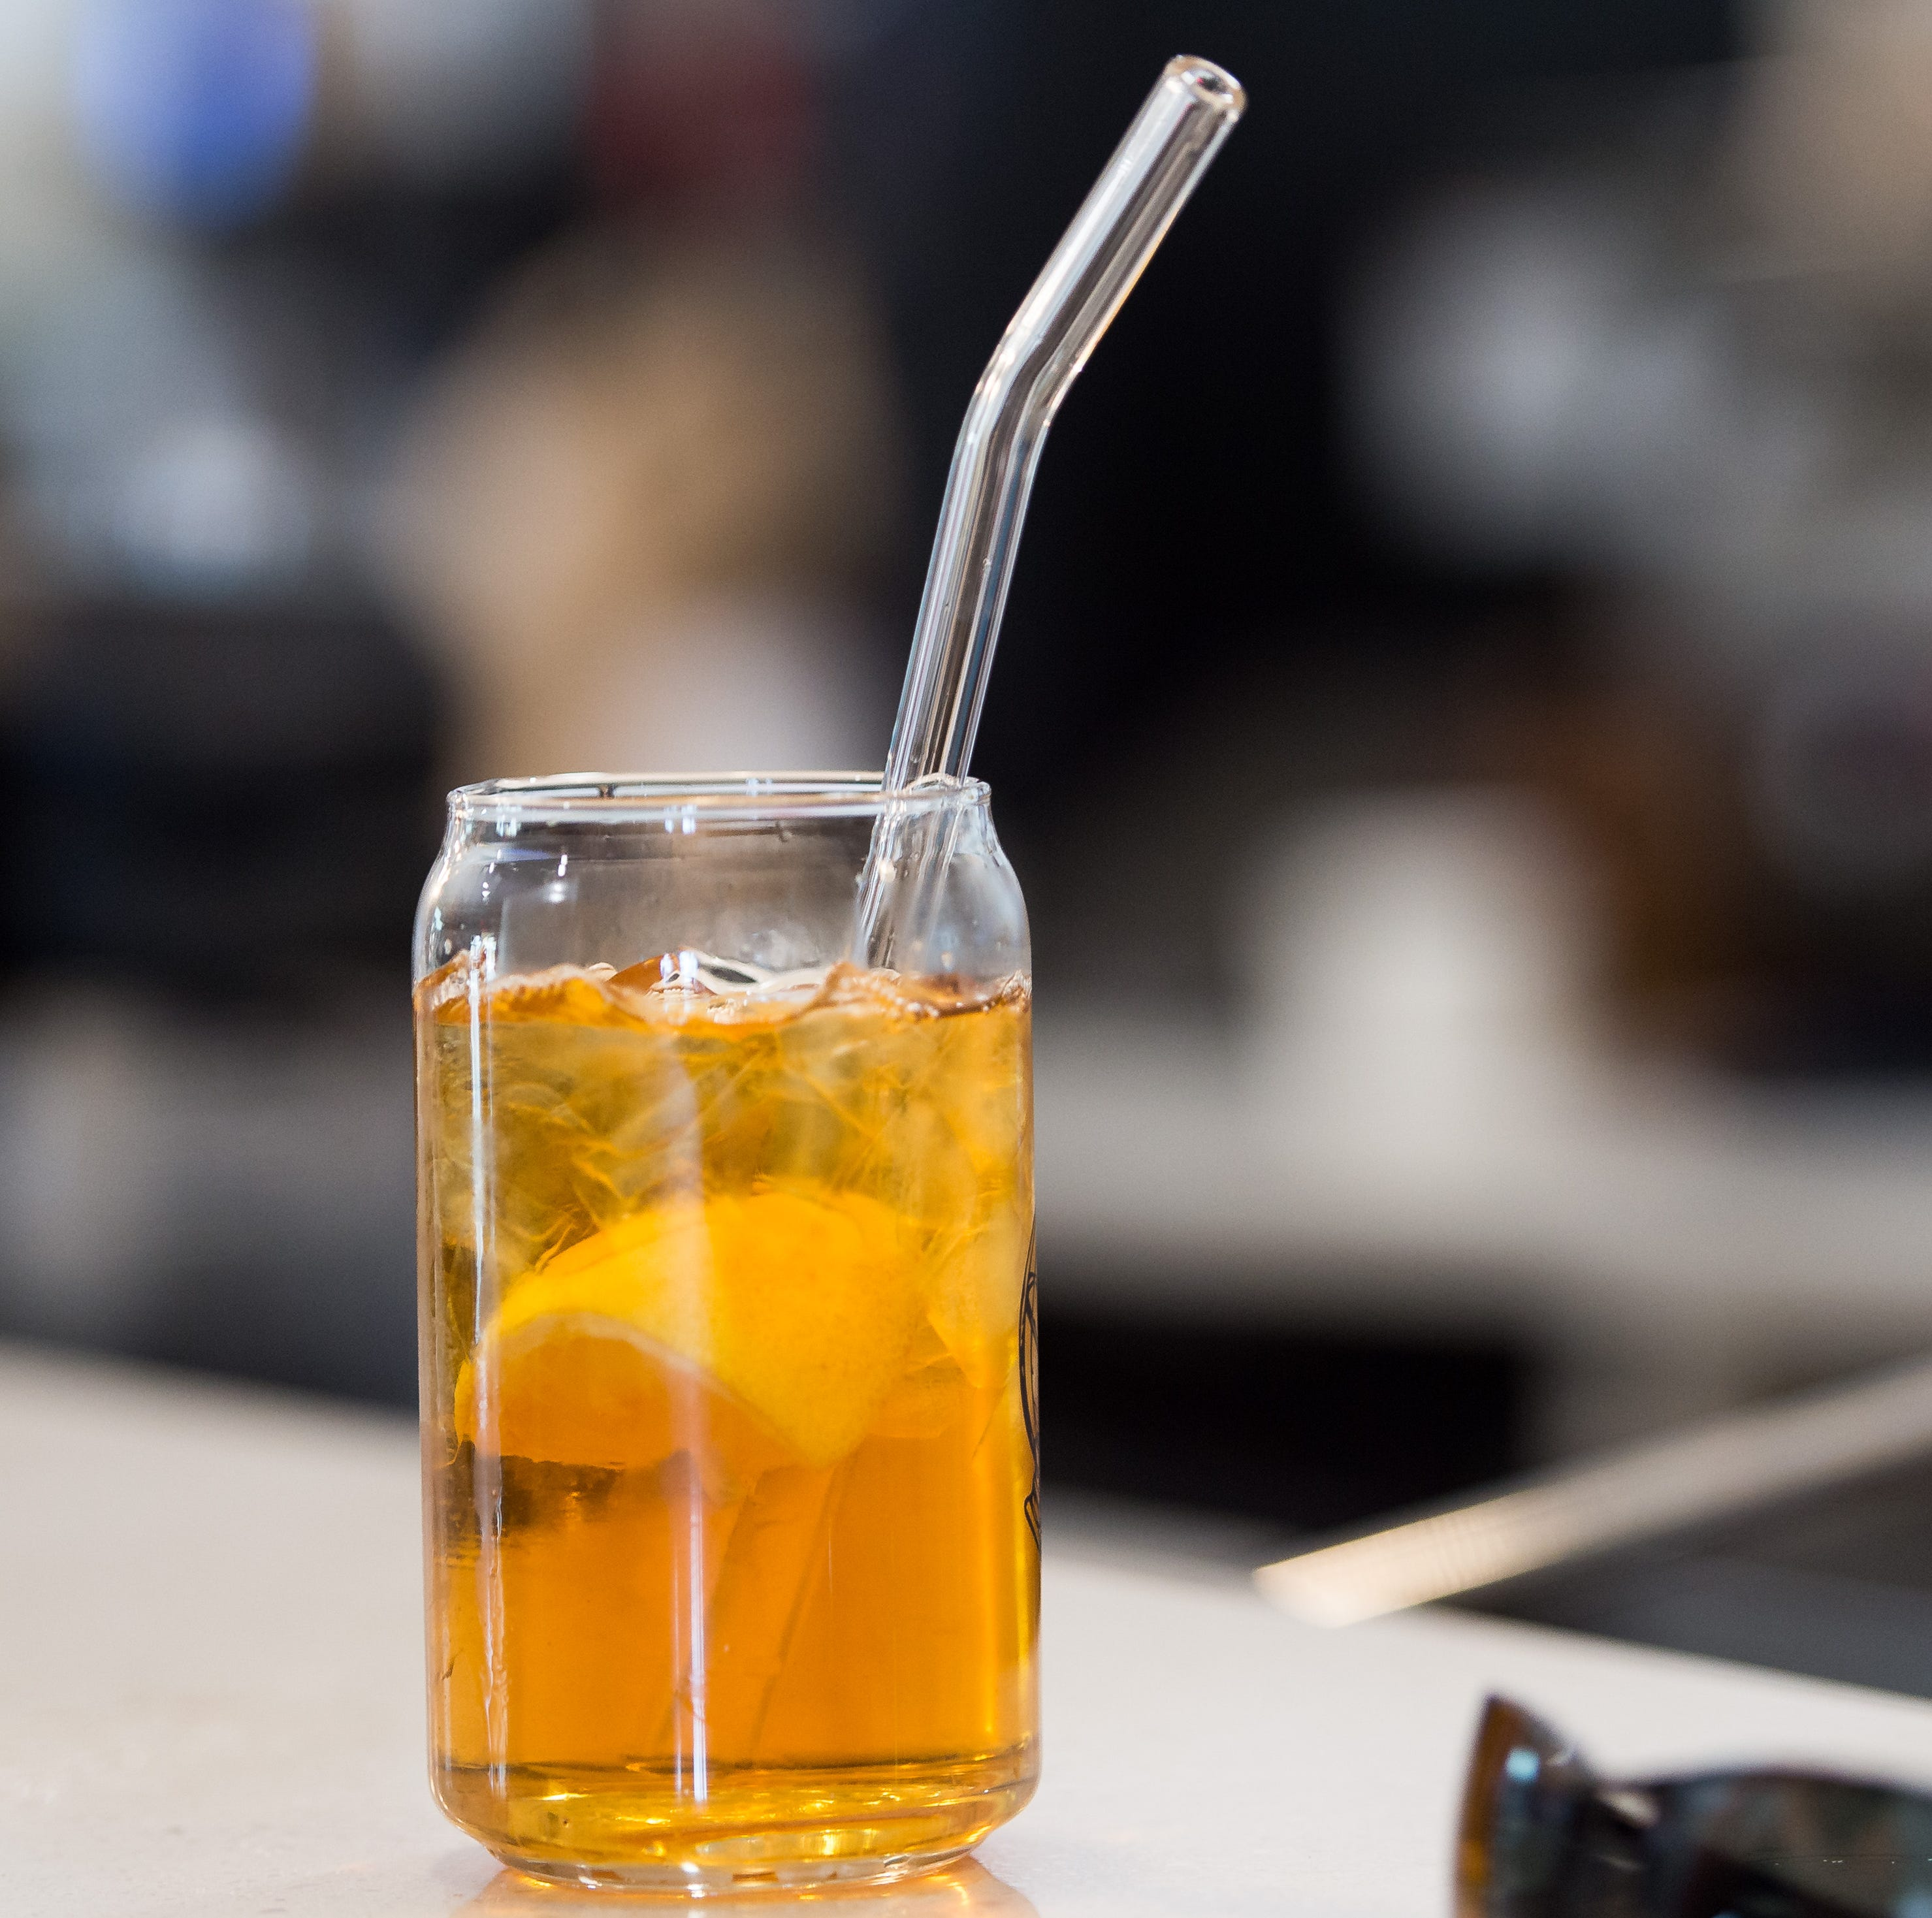 Lawmakers block plastic straw bans in Florida